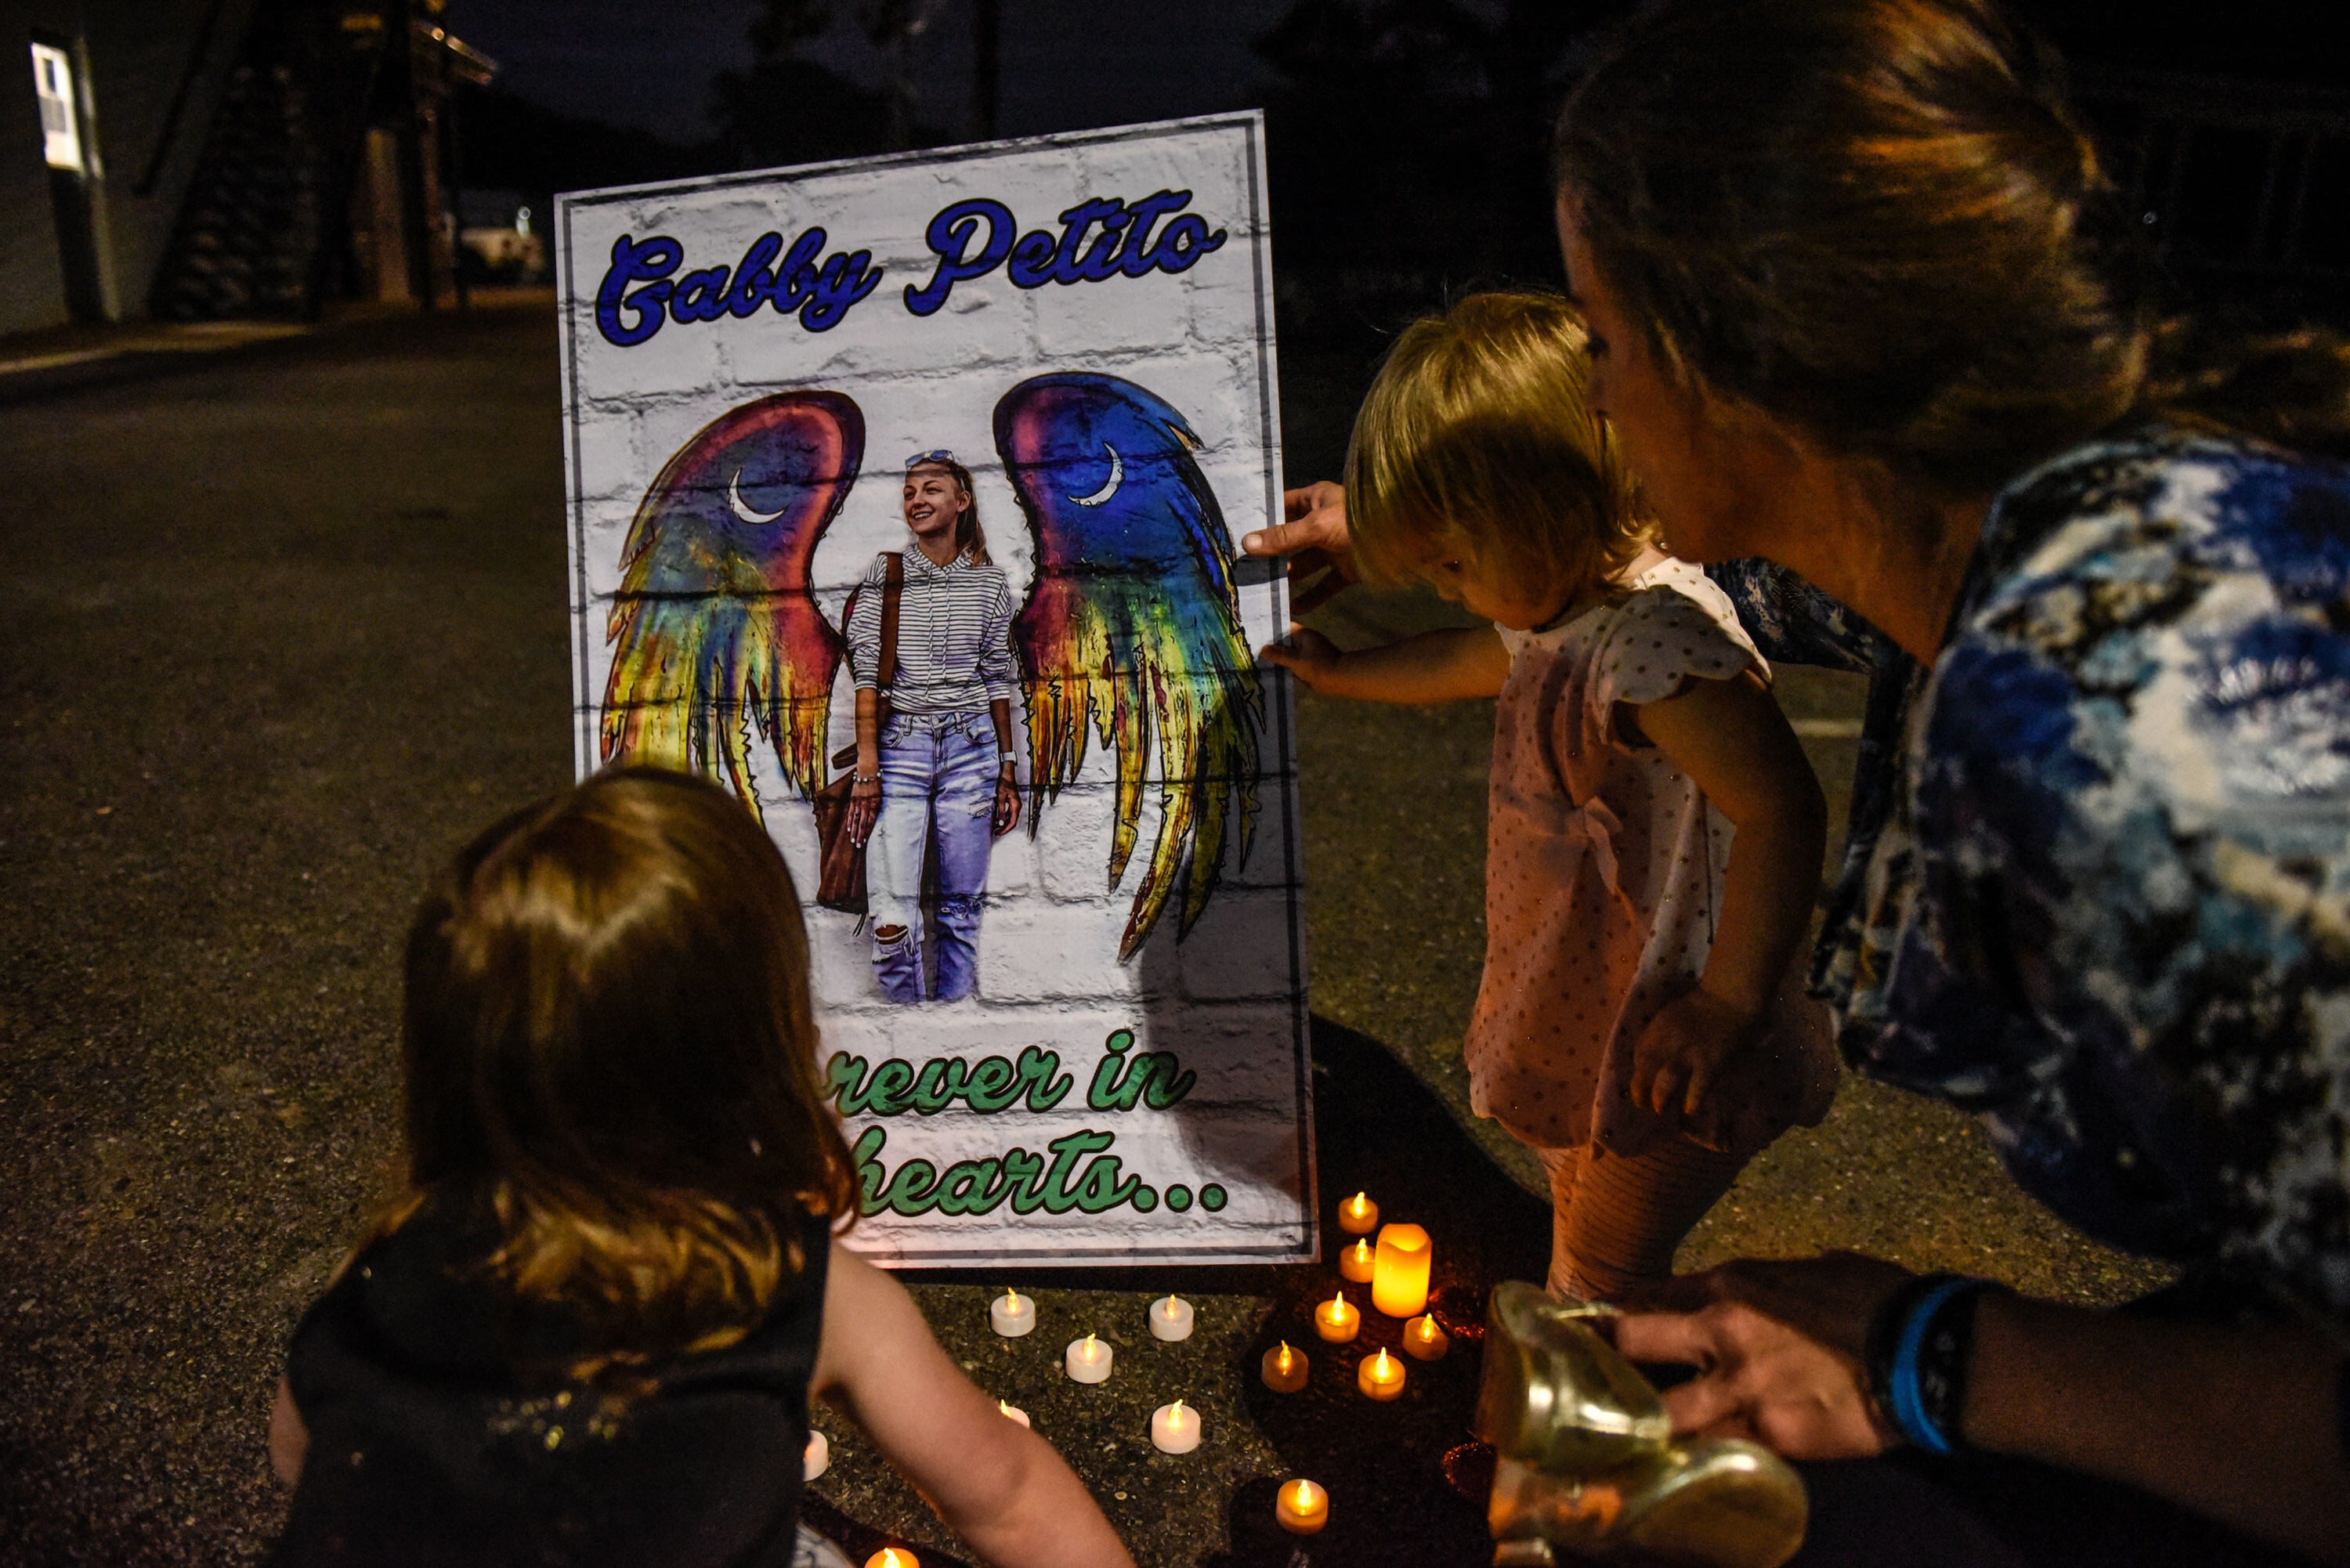 Gabby Petito's parents travel to Wyoming to bring her remains home